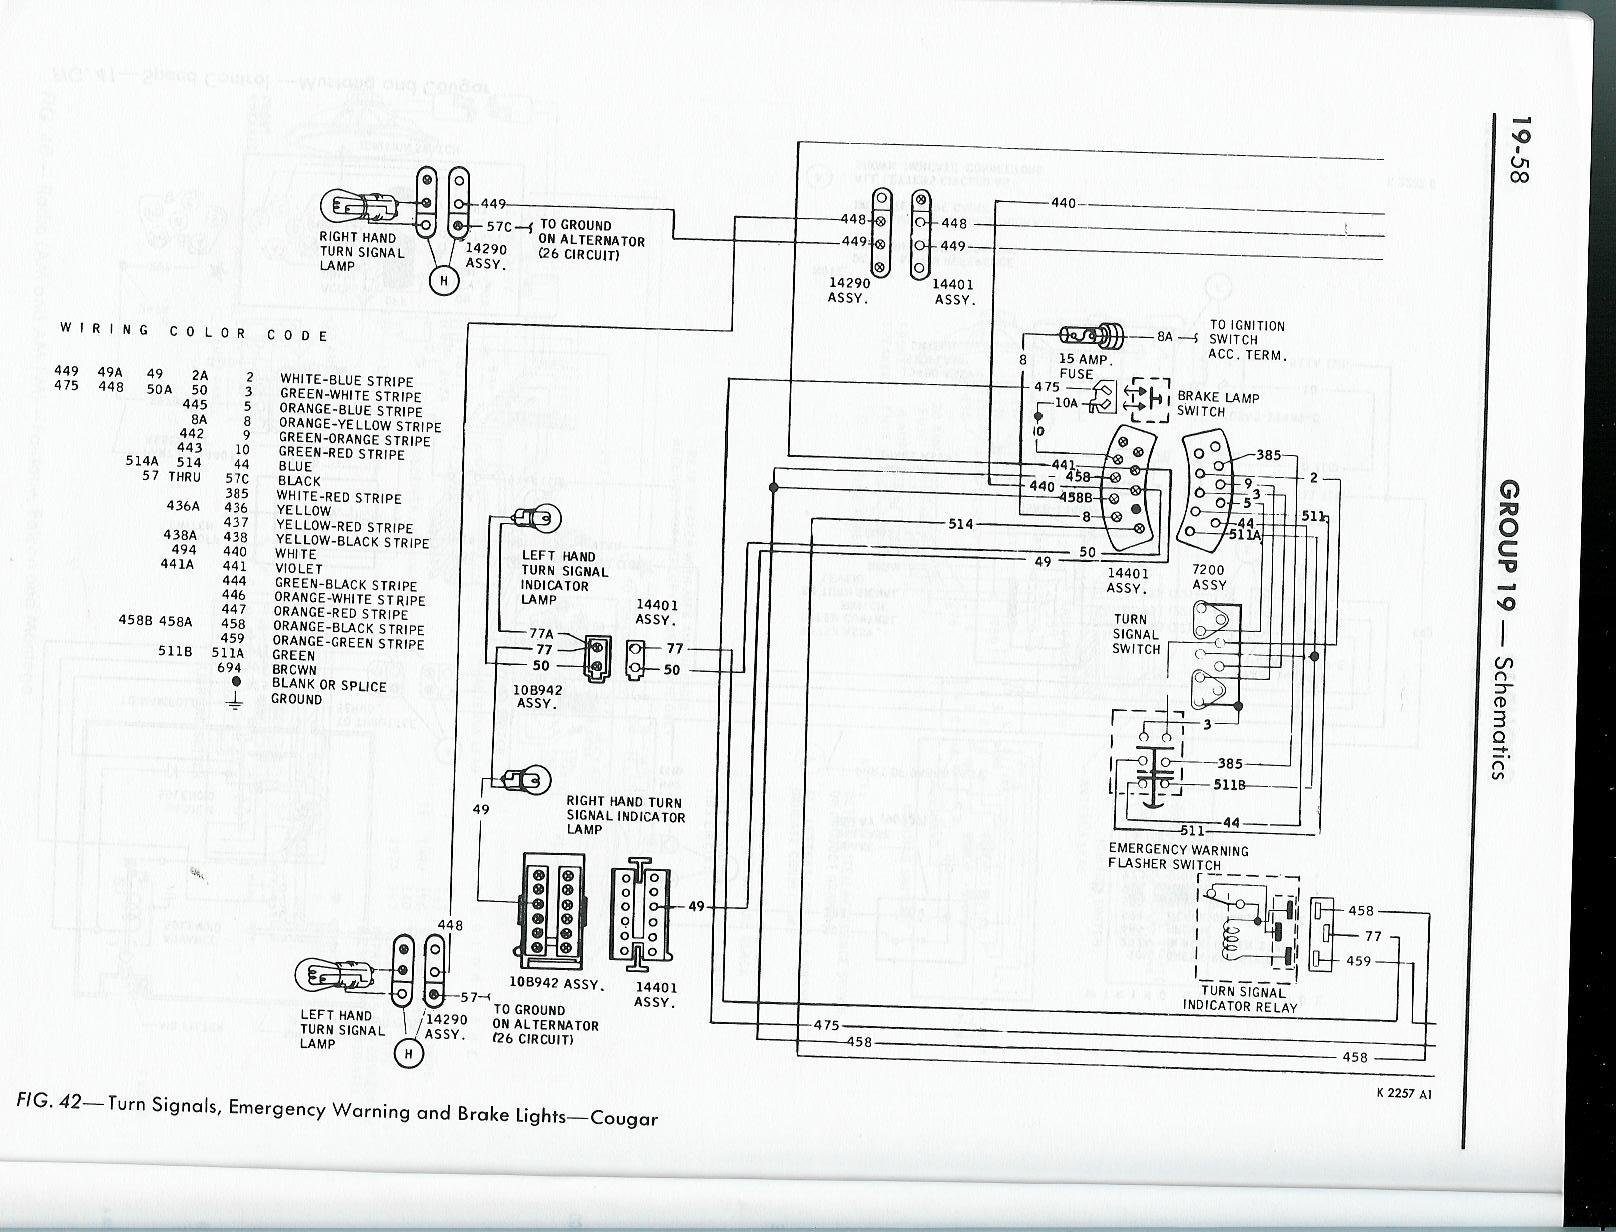 1969 Cougar Turn Signal Wiring Diagram 1981 Chevy Truck Wiring Harness For Wiring Diagram Schematics